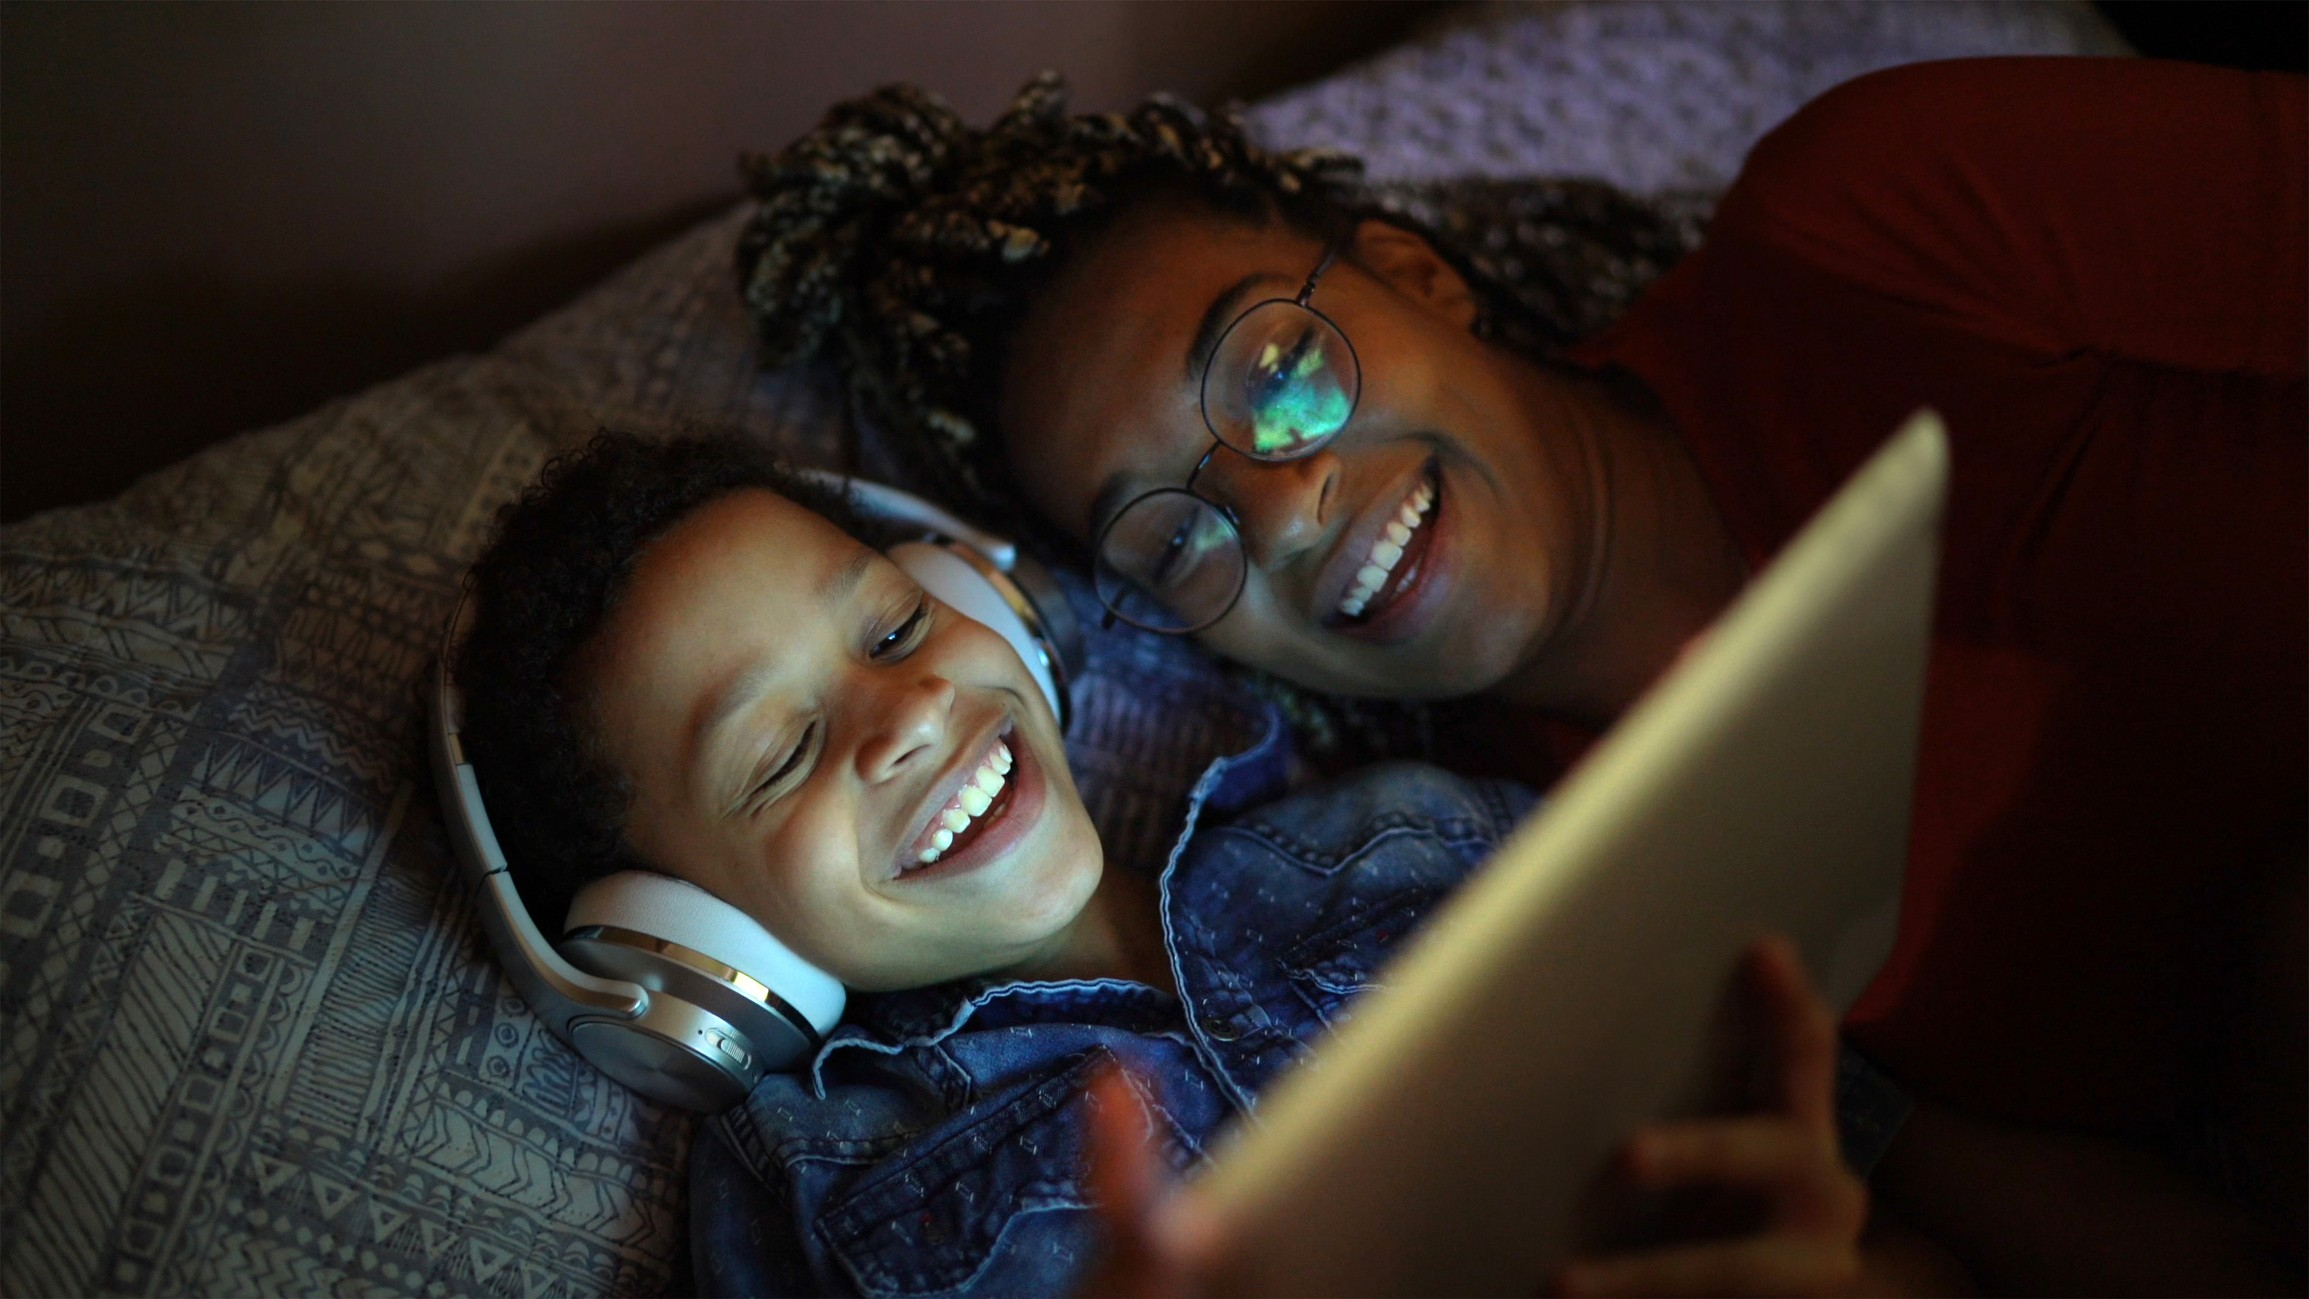 Parent and child smiling together while using a tablet device.